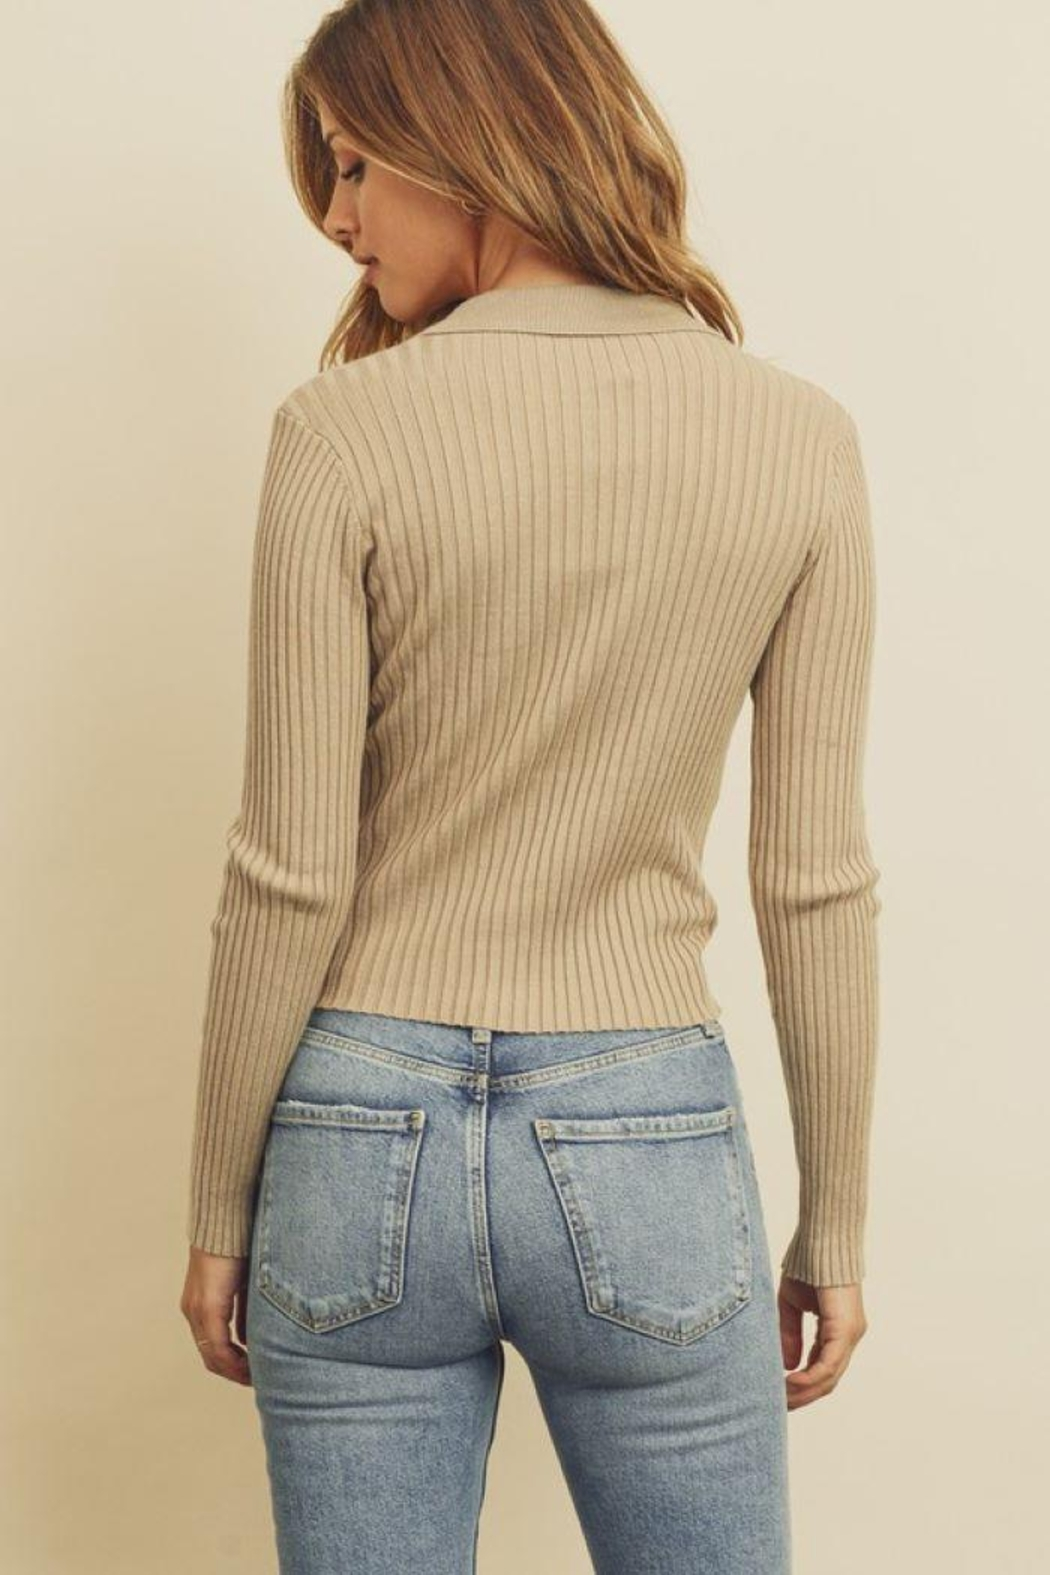 dress forum Collared Button-Down Knitted Top - Front Full Image